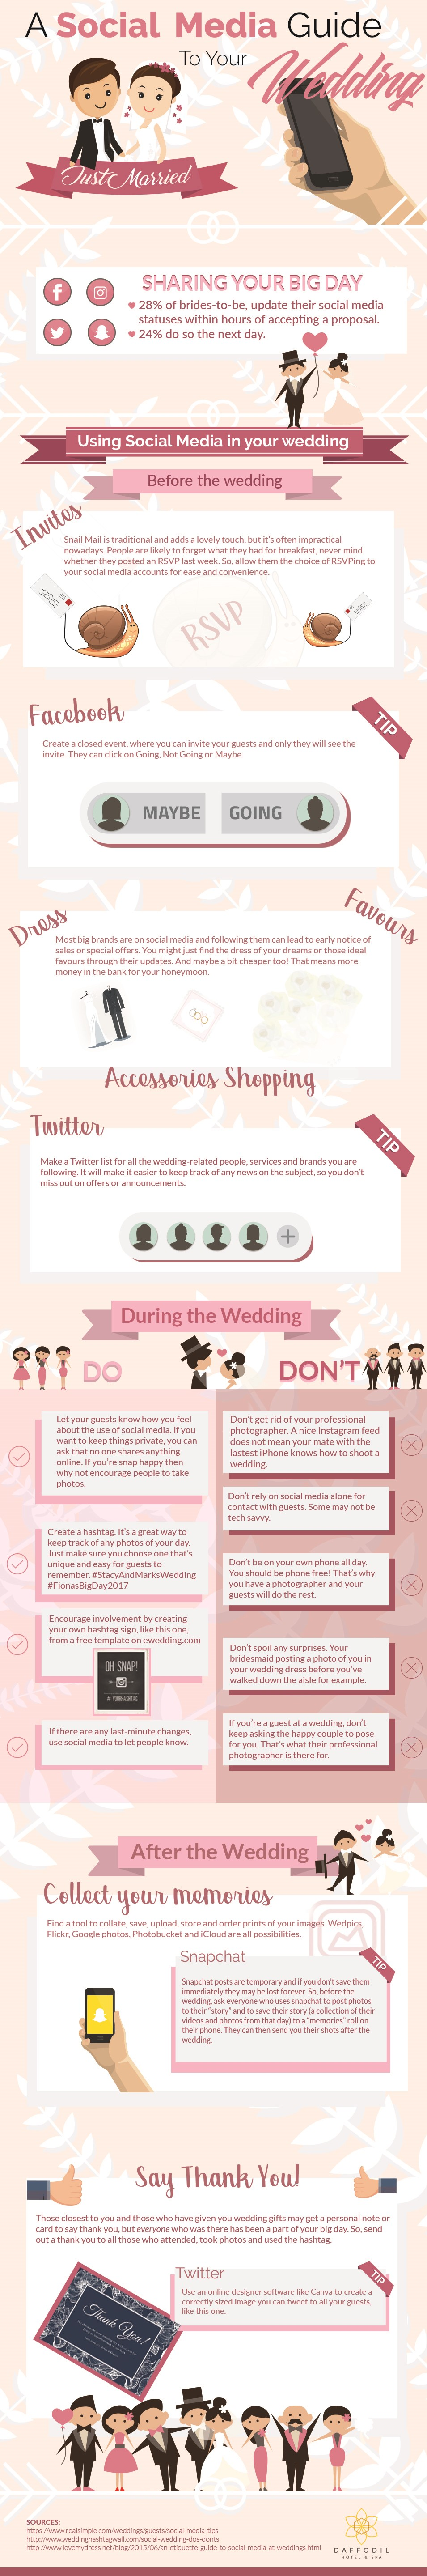 A Social Media Guide To Your Wedding [Infographic]